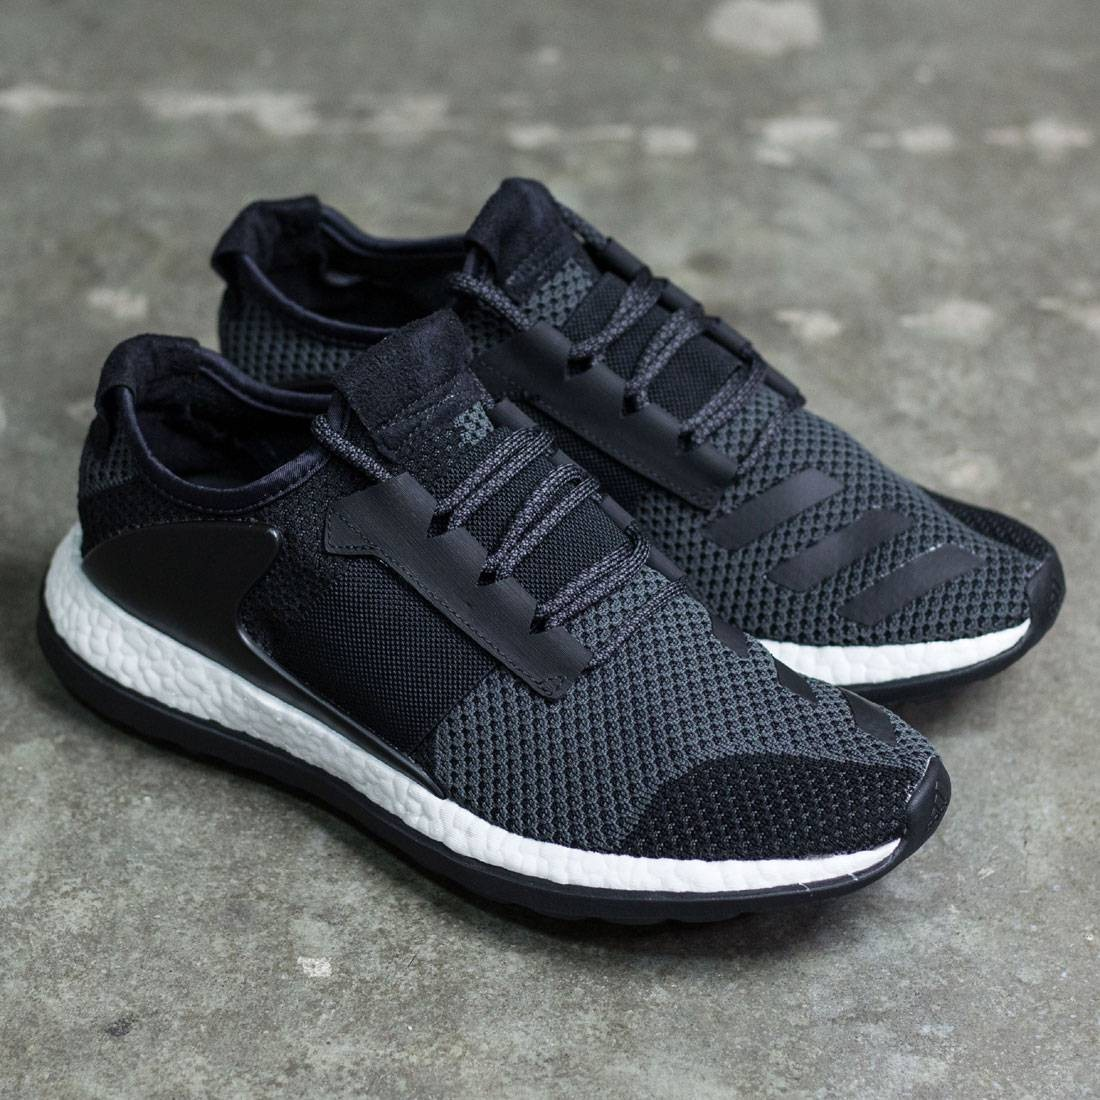 5904296d5 ... Adidas Consortium Day One Men ADO Pure Boost ZG (black core black)  ADIDAS CONSORTIUM ADO PURE BOOST ZG RUNNING SHOES PANTONE GREEN S81827 ...